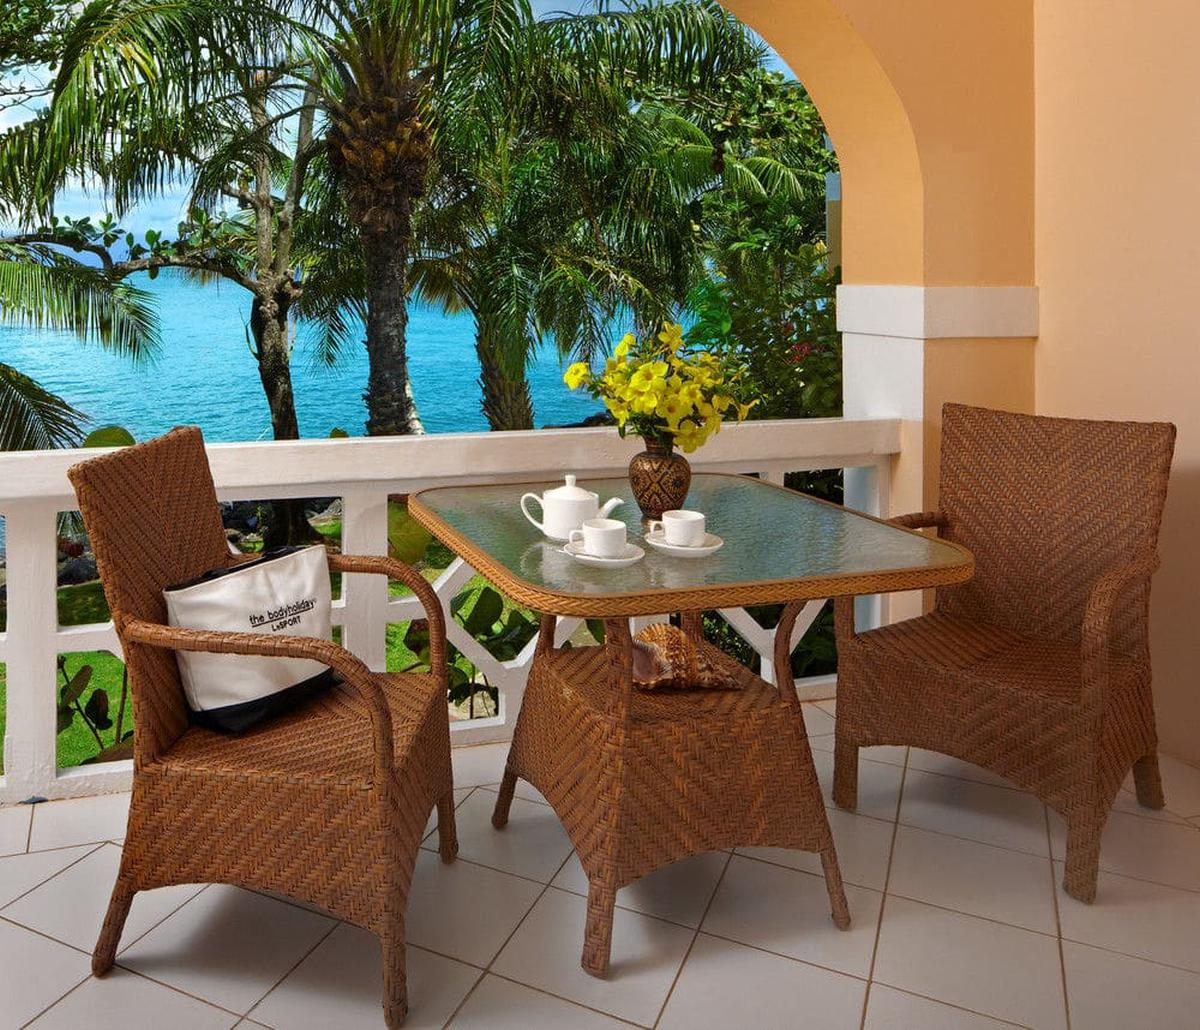 content/hotel/St. Lucia hotelek/The Body Holiday LeSport/Accommodation/Luxury Oceanfront Room/thebodyholidaylesport-acc-luxuryoceanfrontroom-02.jpg